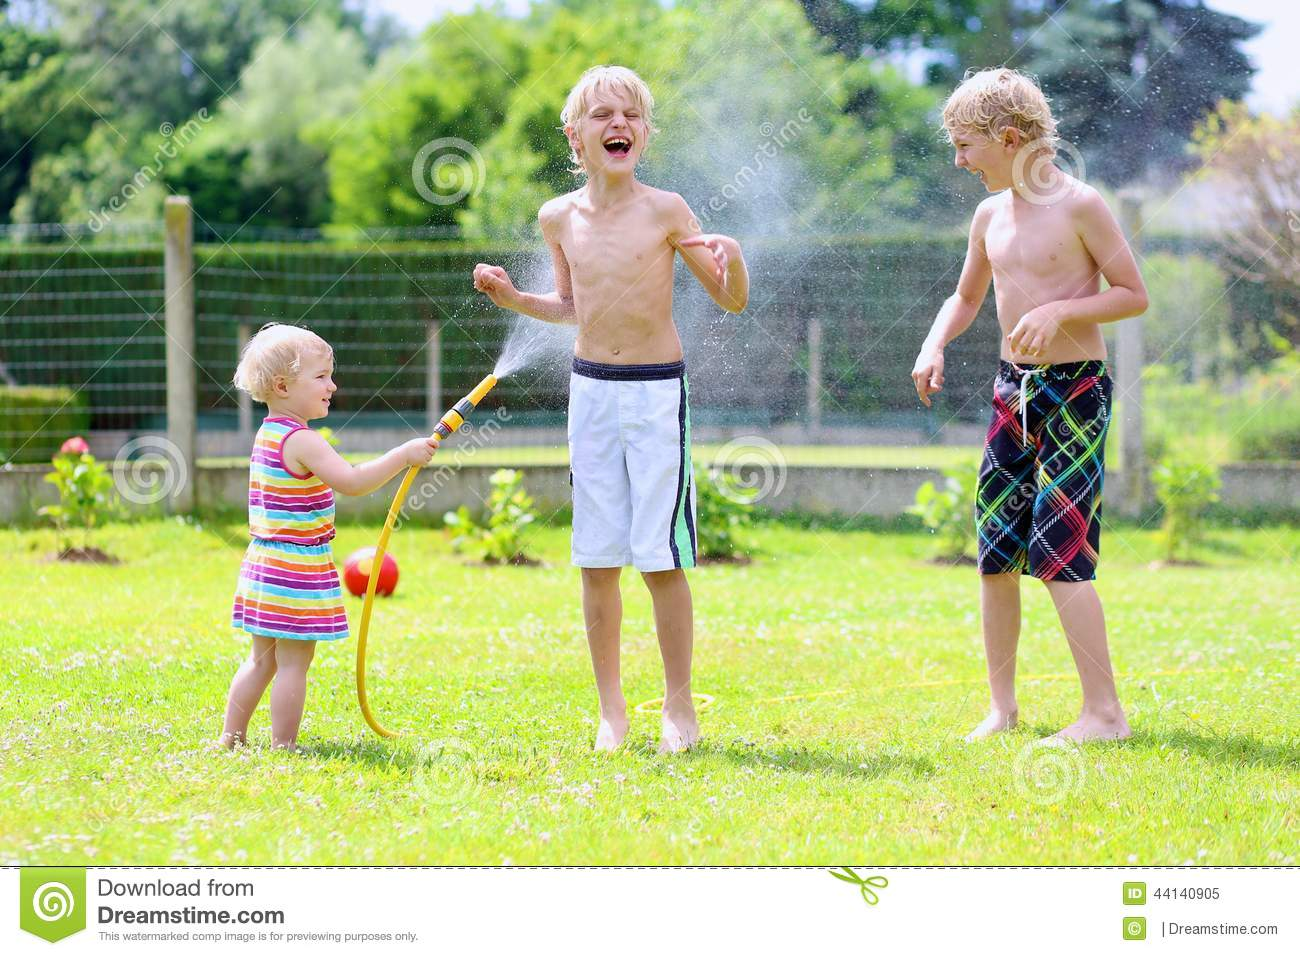 Brothers and sister playing with water hose in the garden